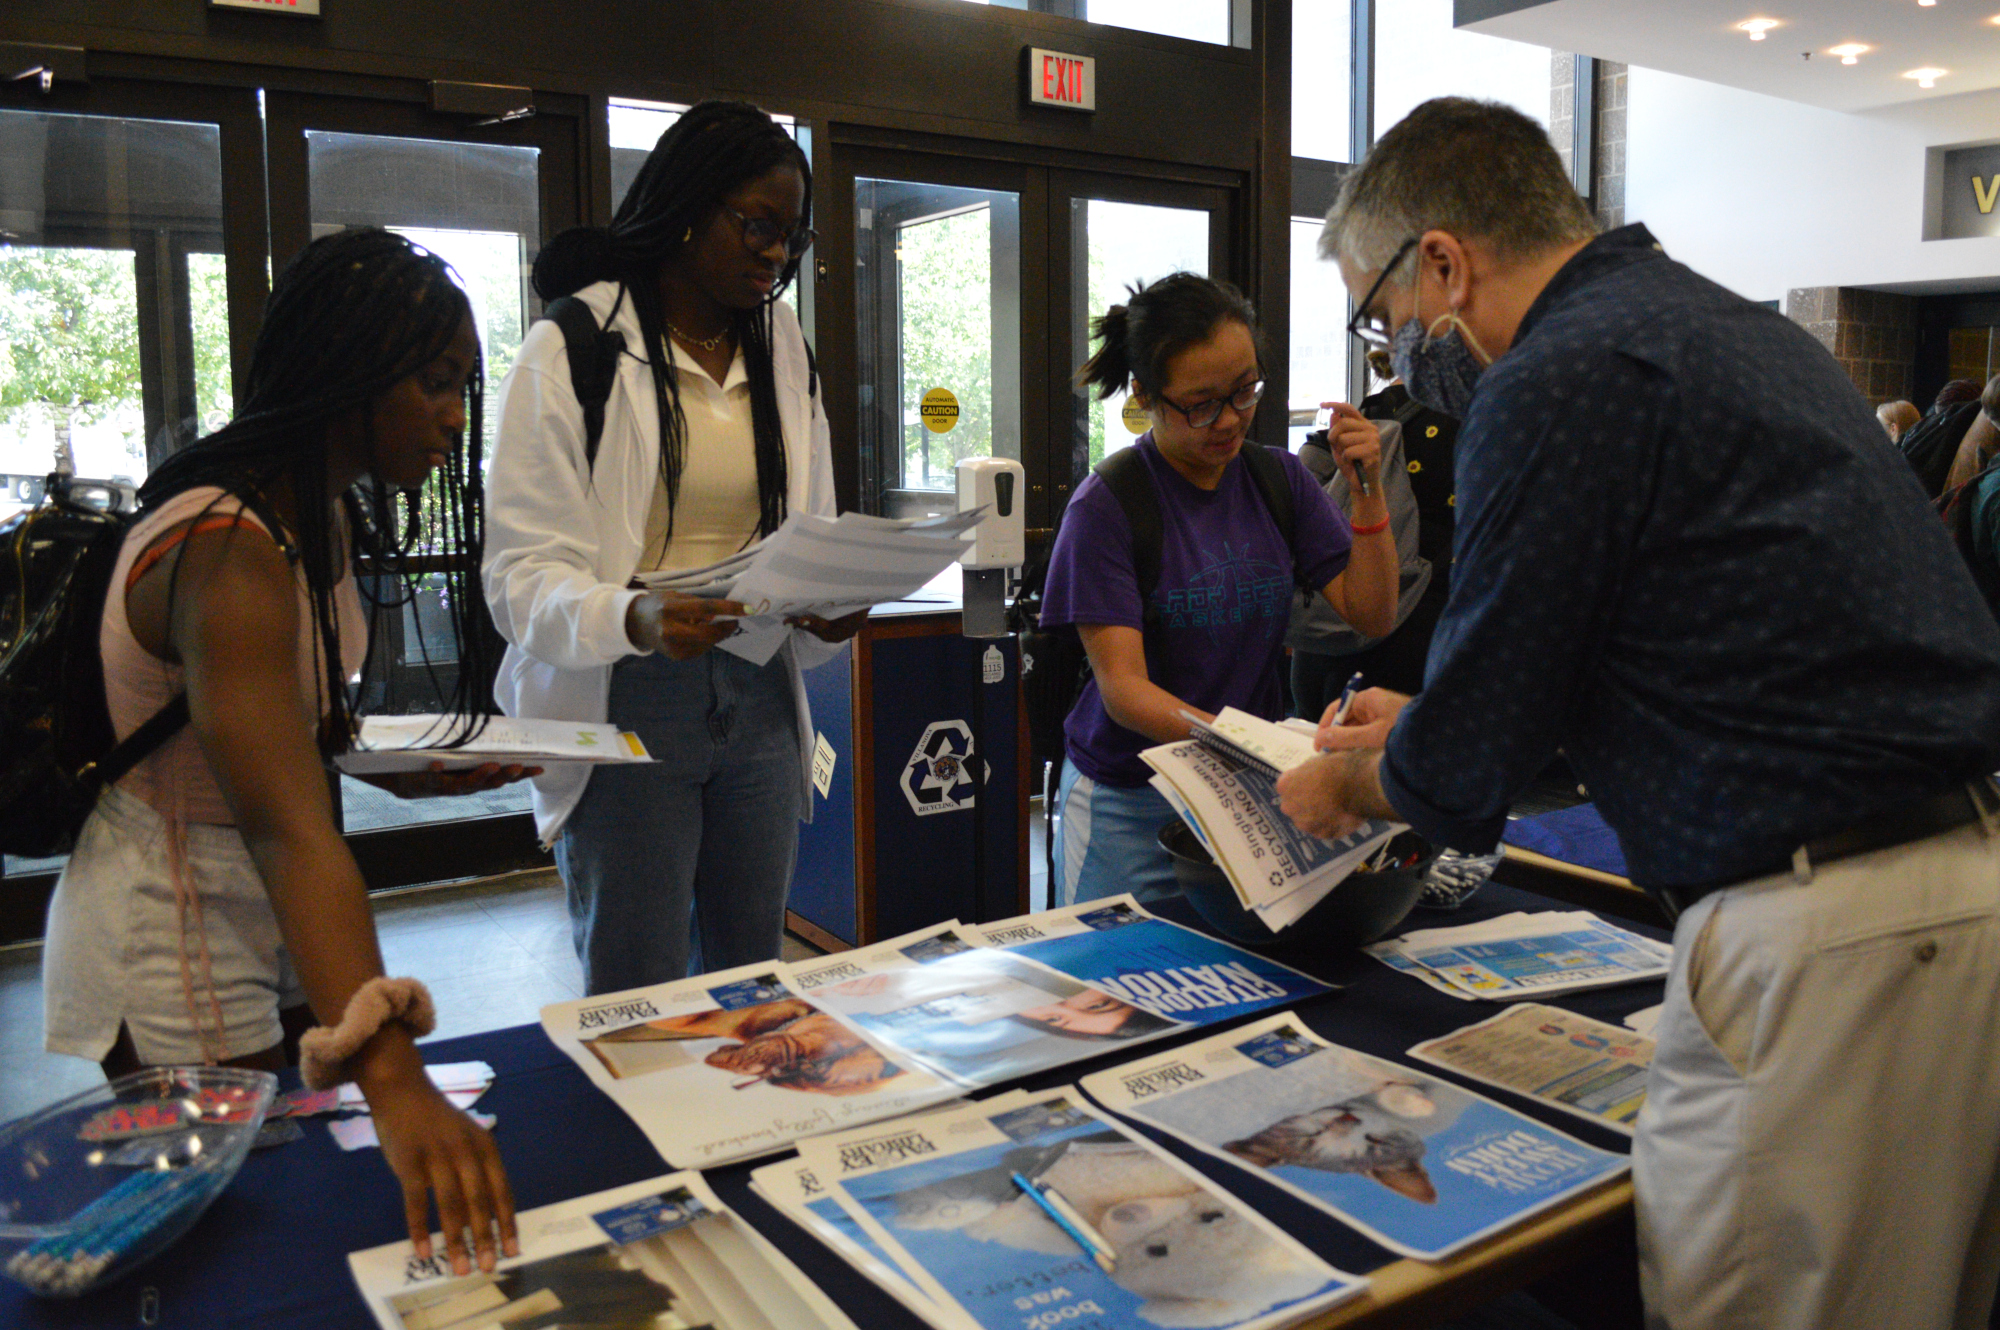 Students meet with Library staff at the RA Fair.